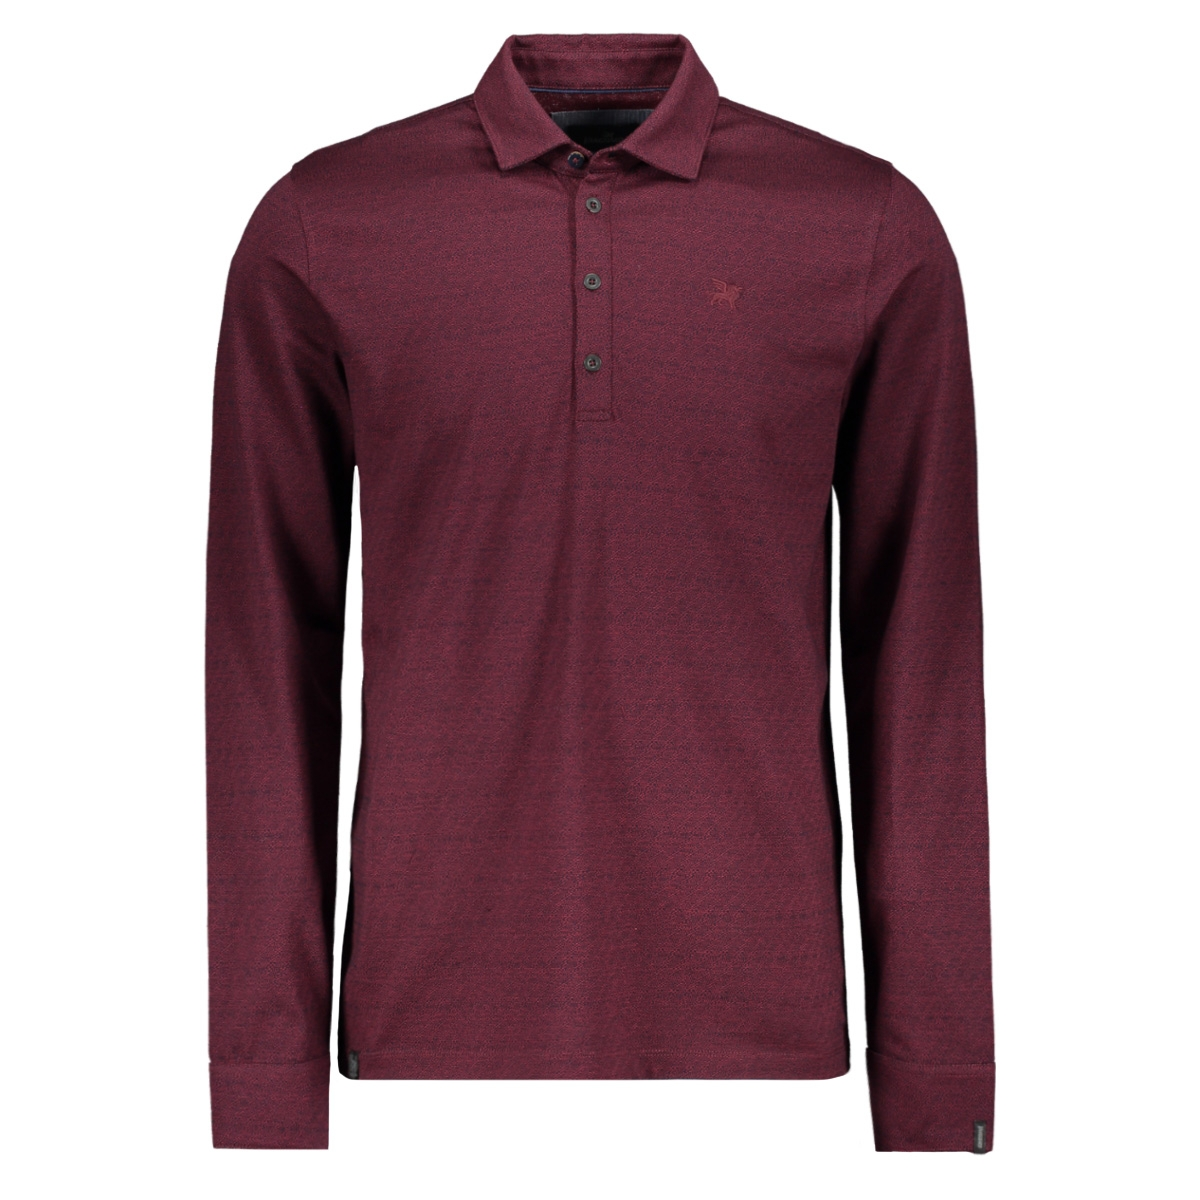 long sleeve polo vps197640 vanguard polo 3246